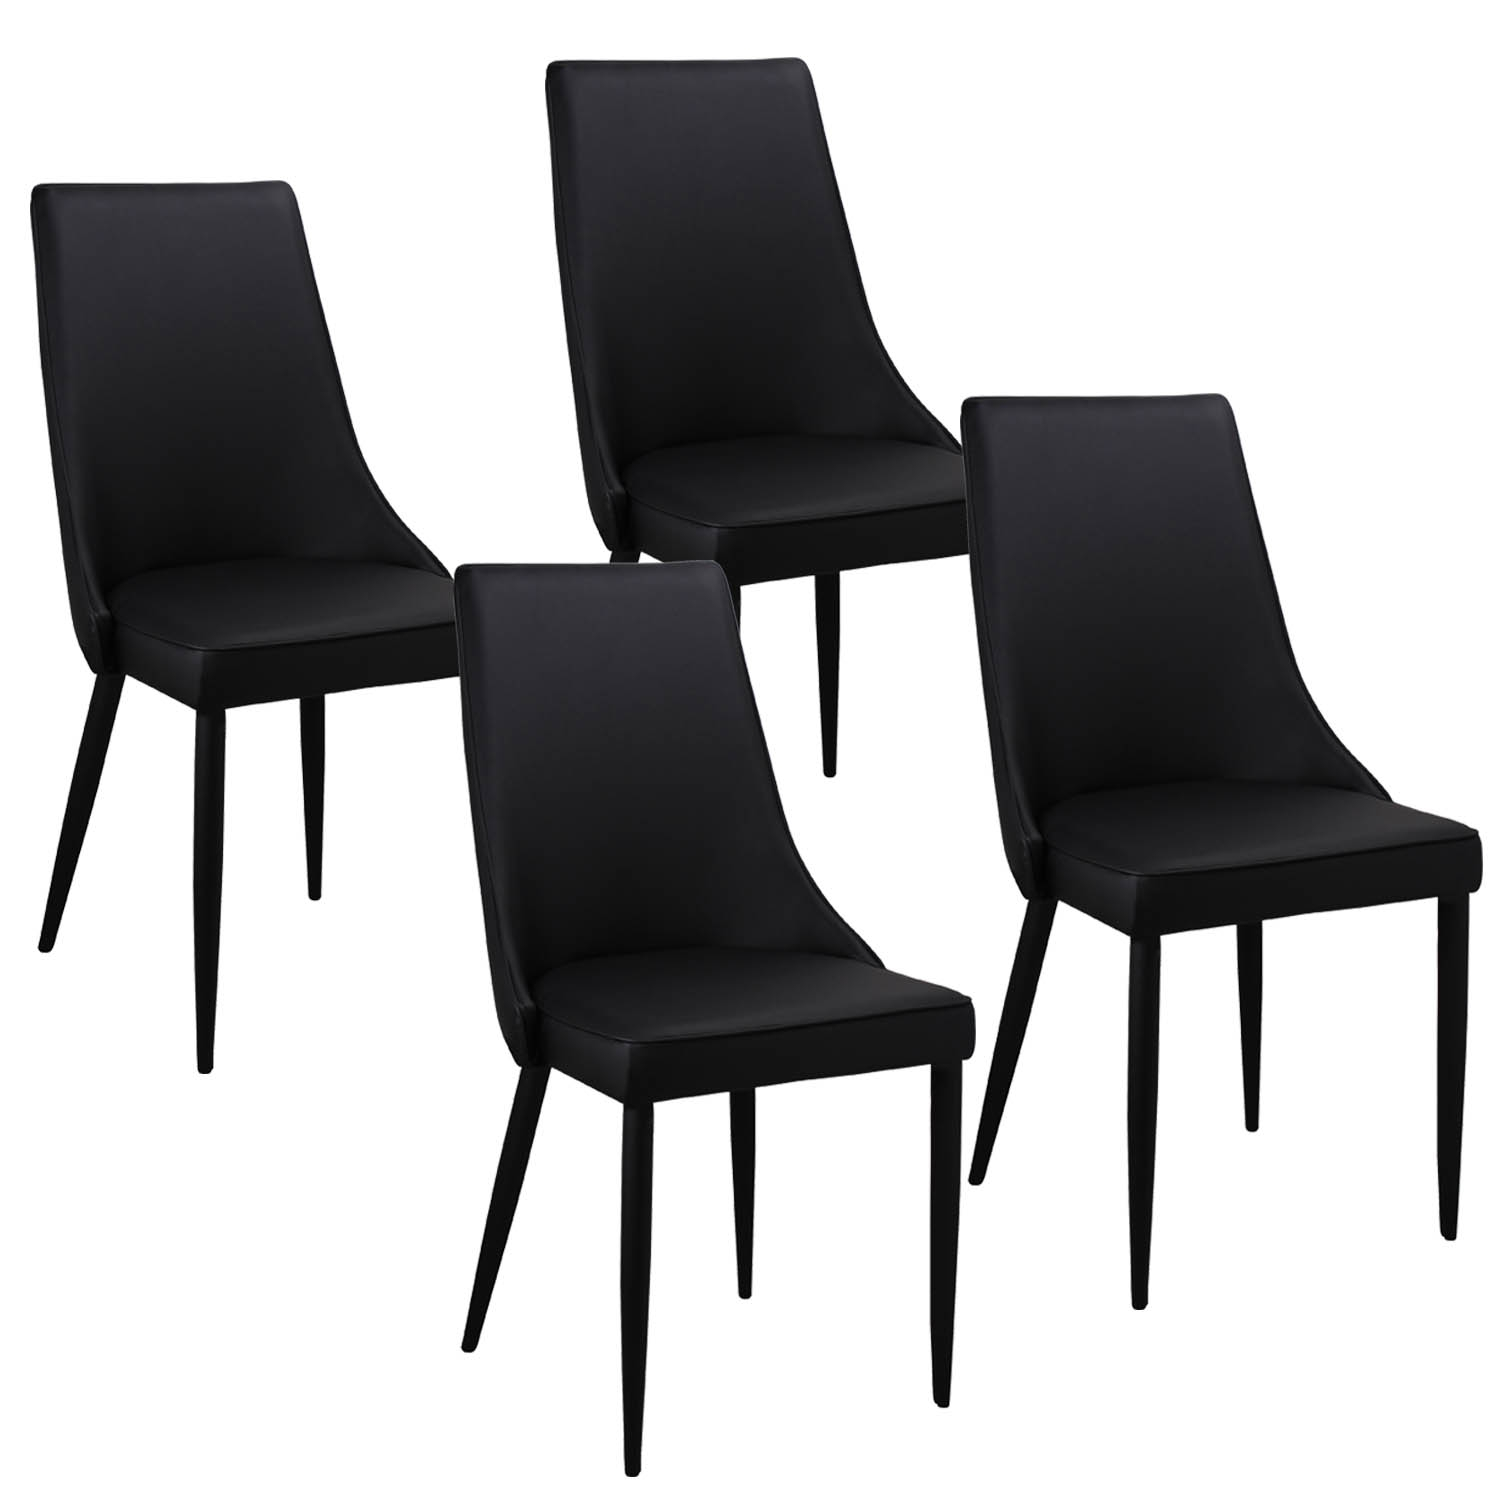 Deco in paris lot de 4 chaises noir avev avev gris noir x4 - Lot de 4 chaises design ...